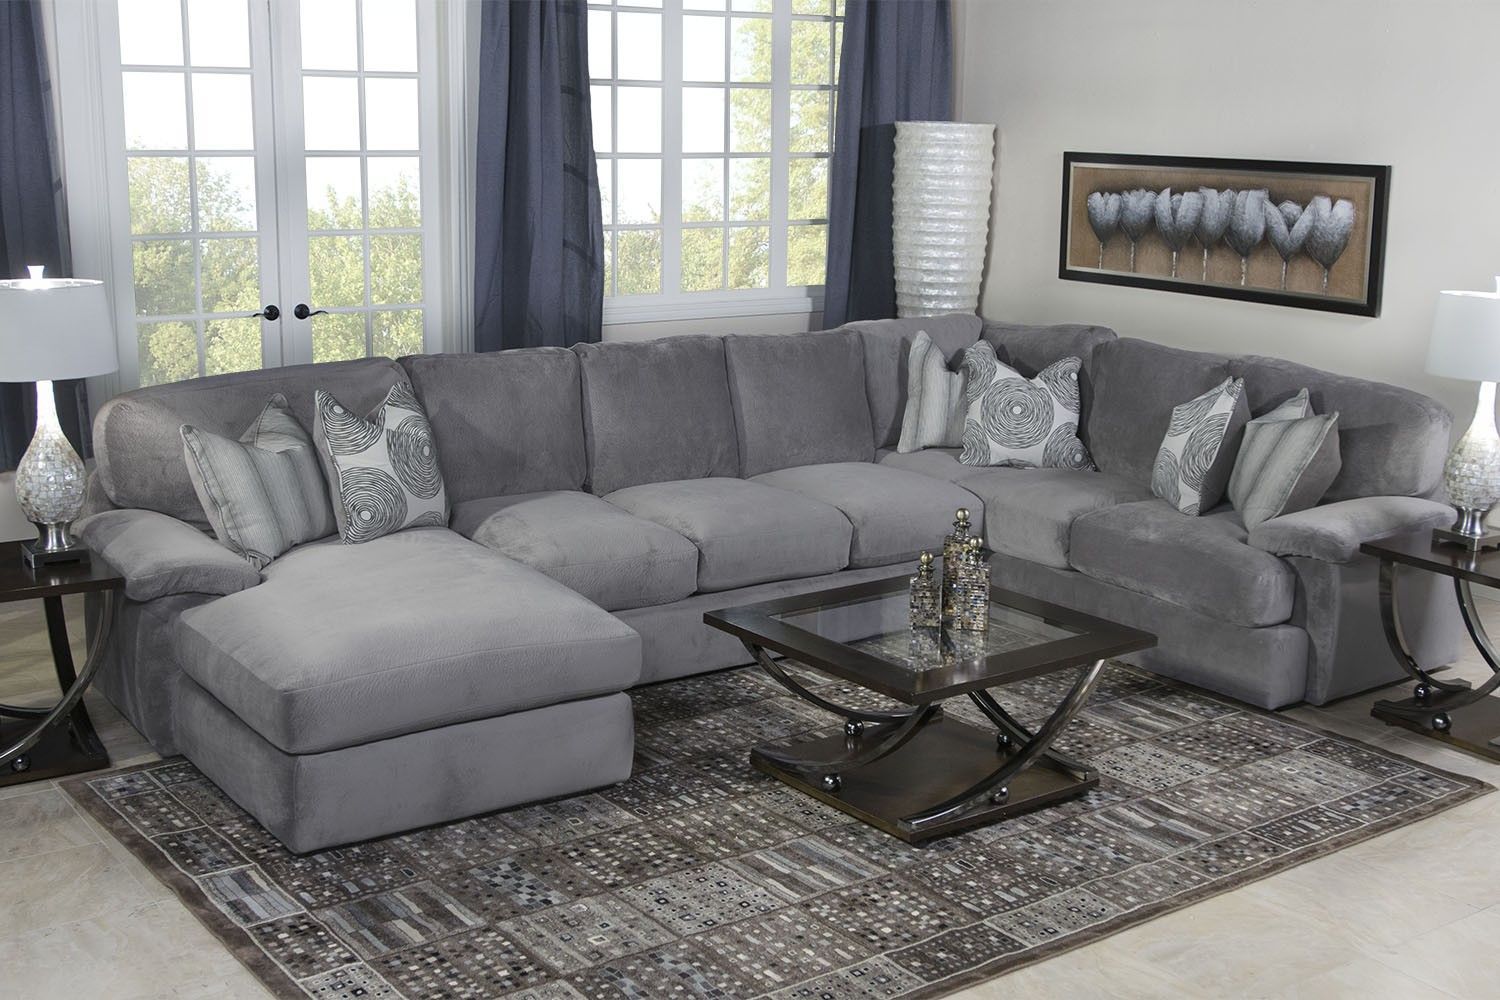 Key west sectional living room in gray living room mor Living room ideas grey furniture